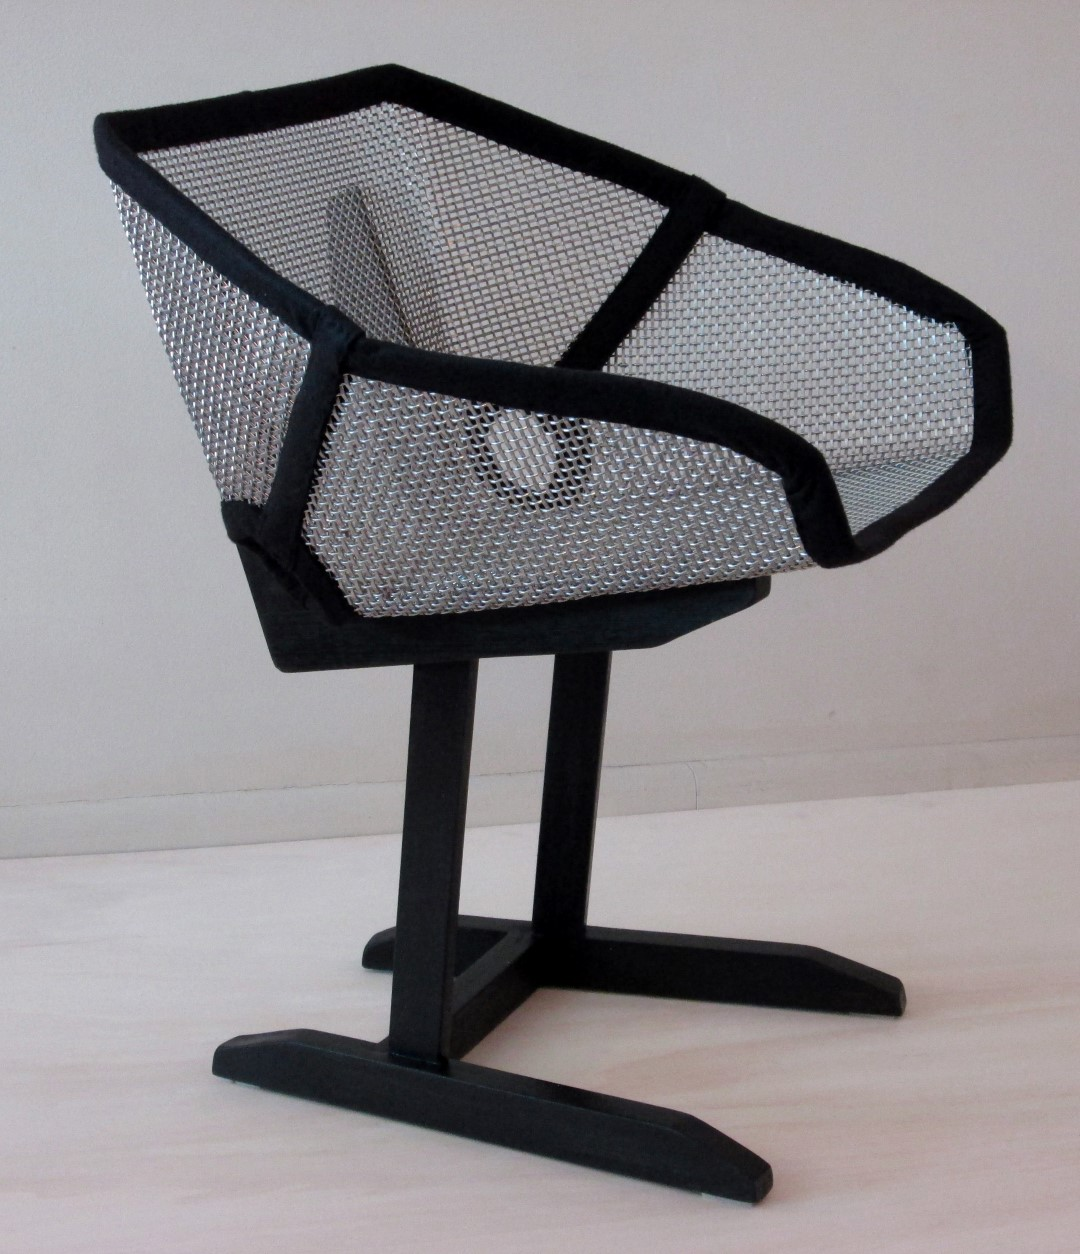 SZ-4 provides interesting reflective characteristics to this chair.